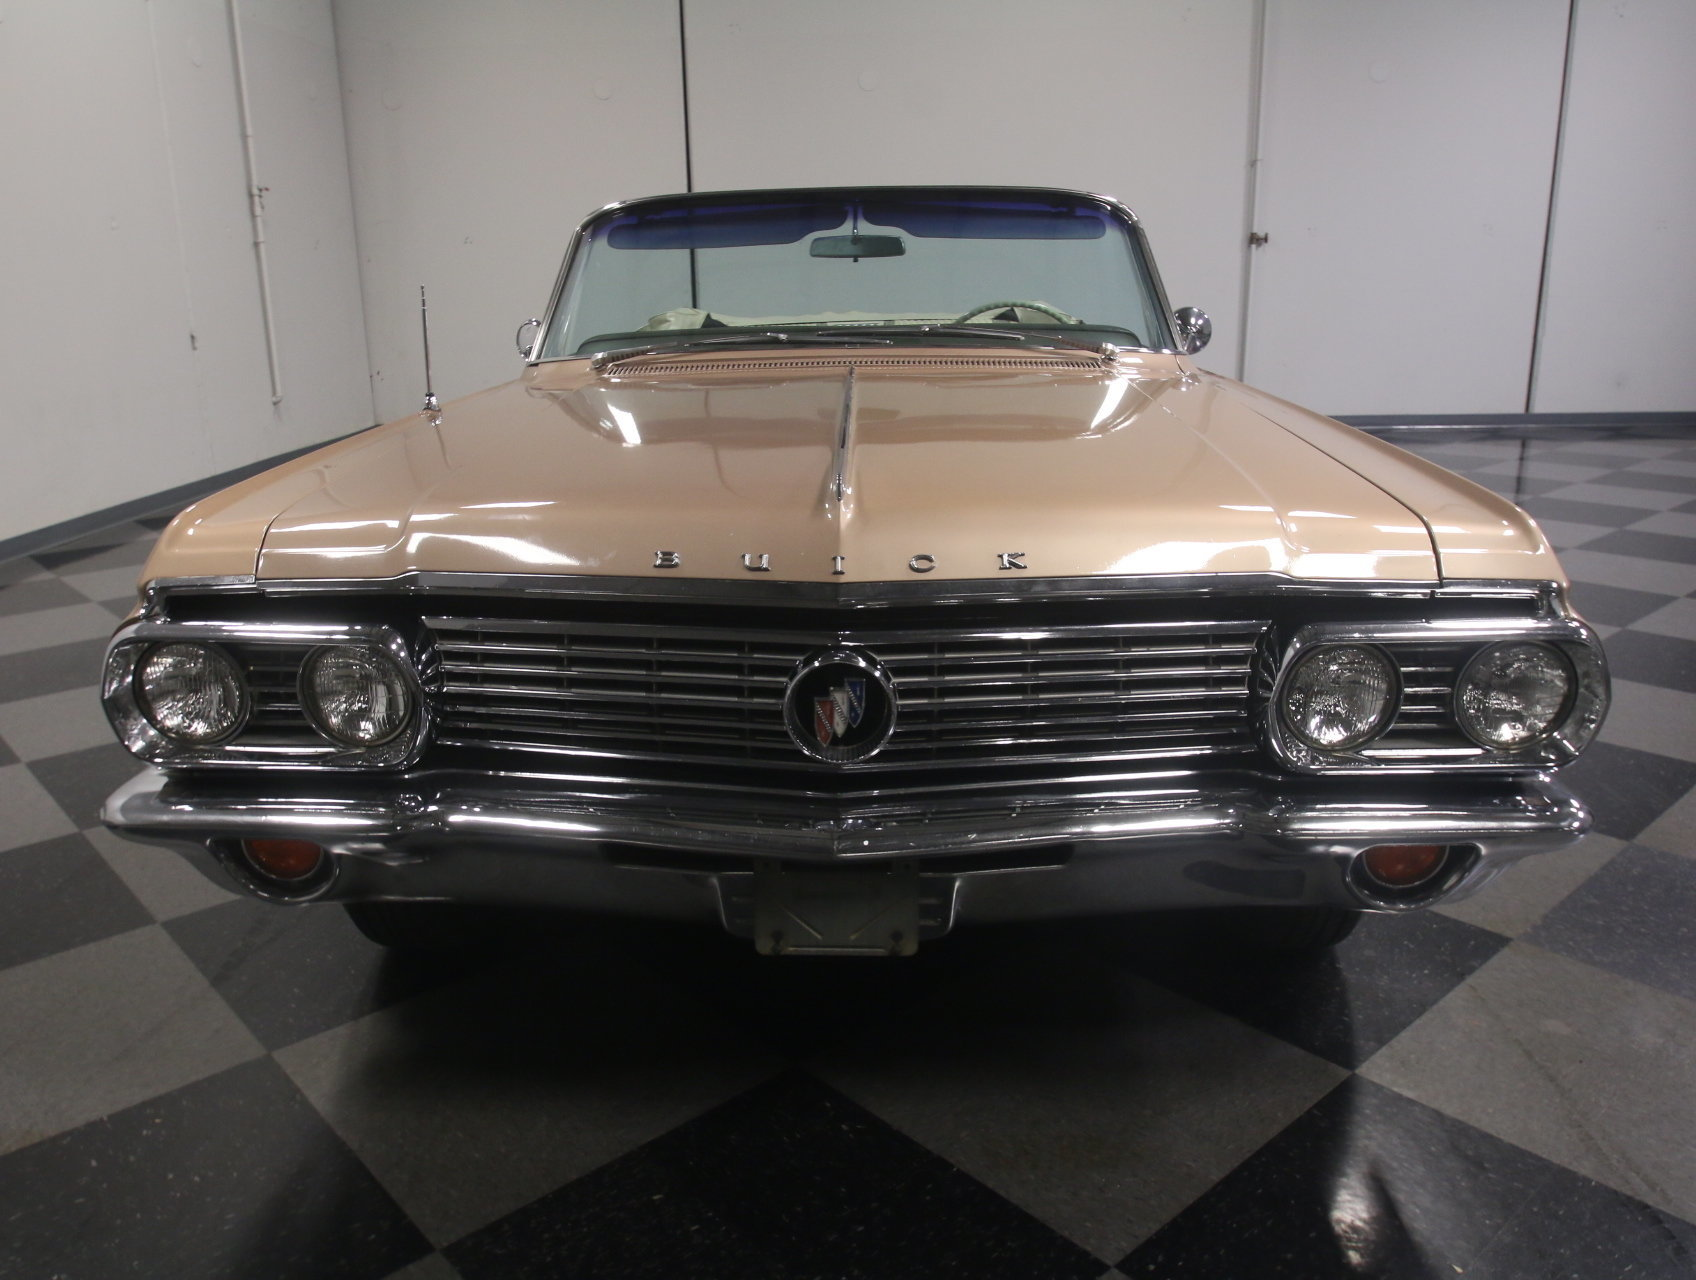 1963 Buick LeSabre Convertible For Sale #73257